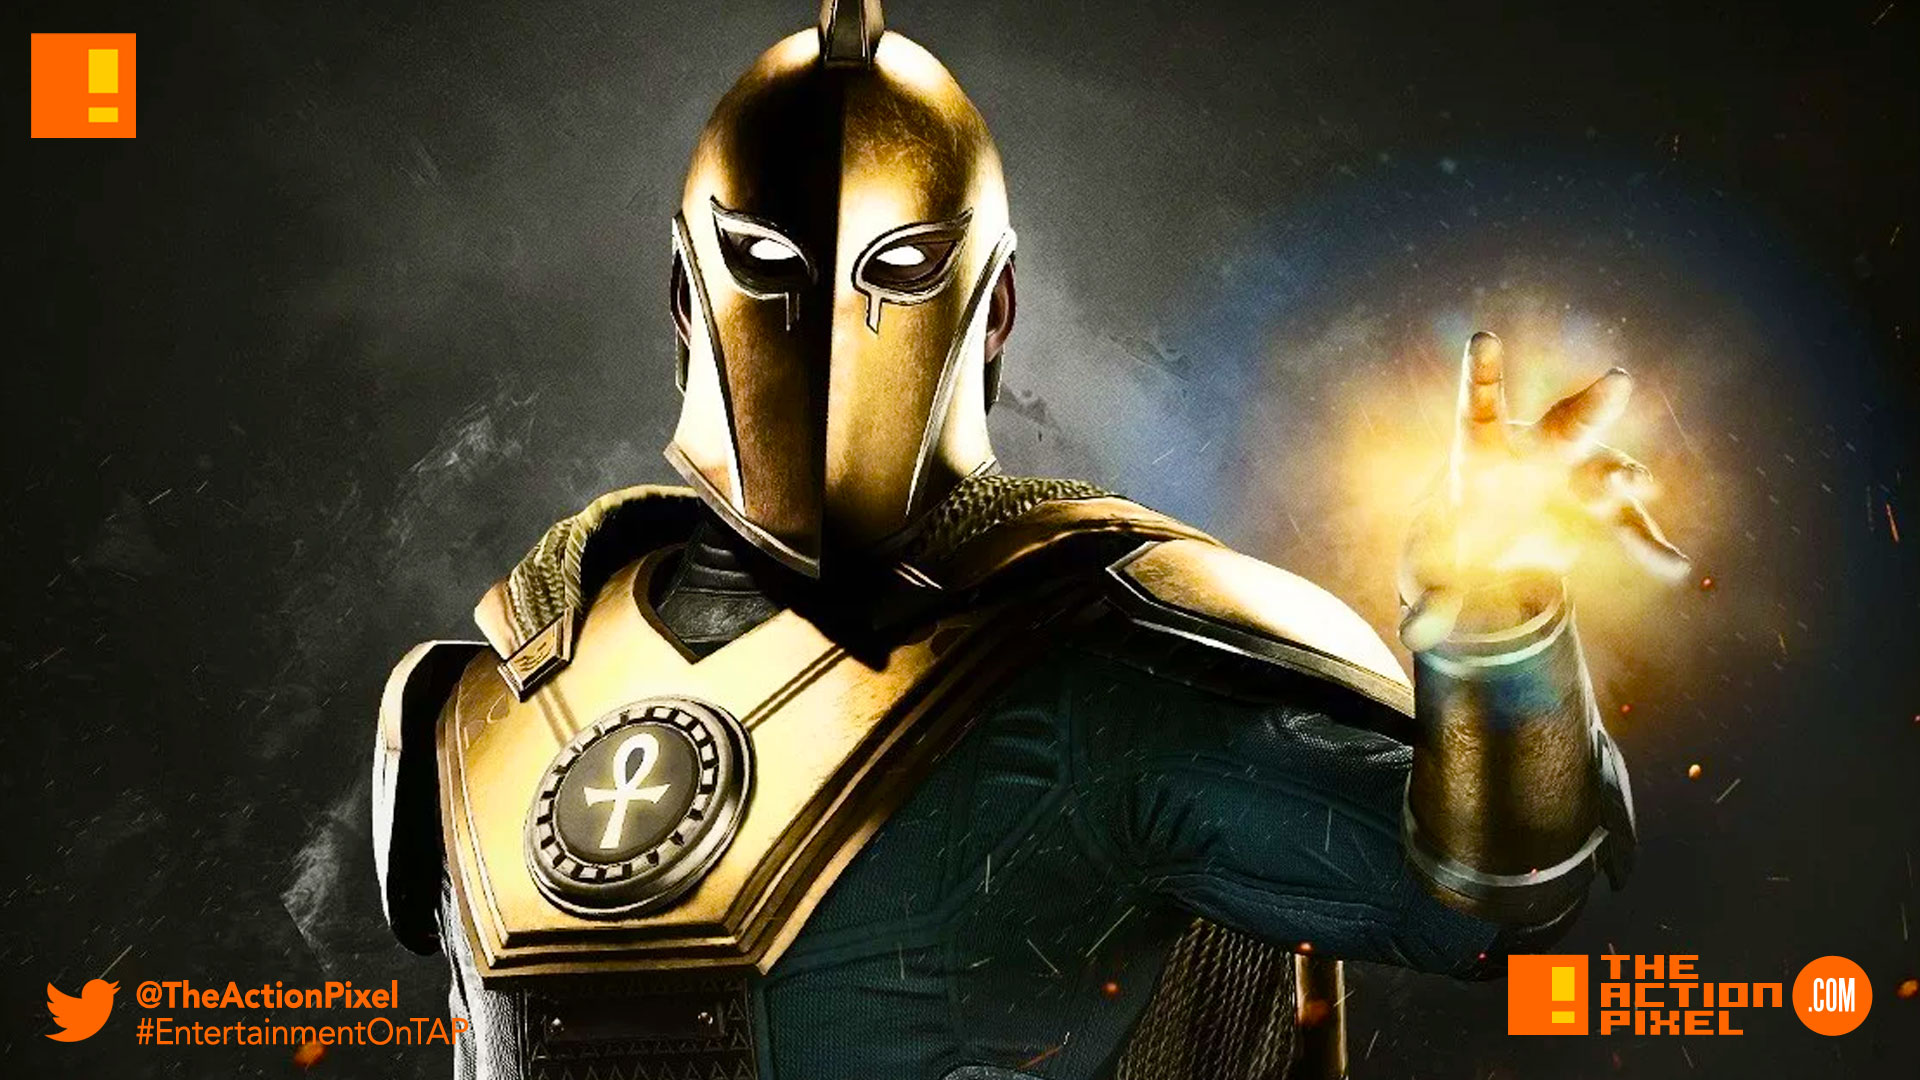 doctor fate, trailer,injustice 2, dc comics, netherrealm studios,wb games, entertainment on tap, the action pixel,